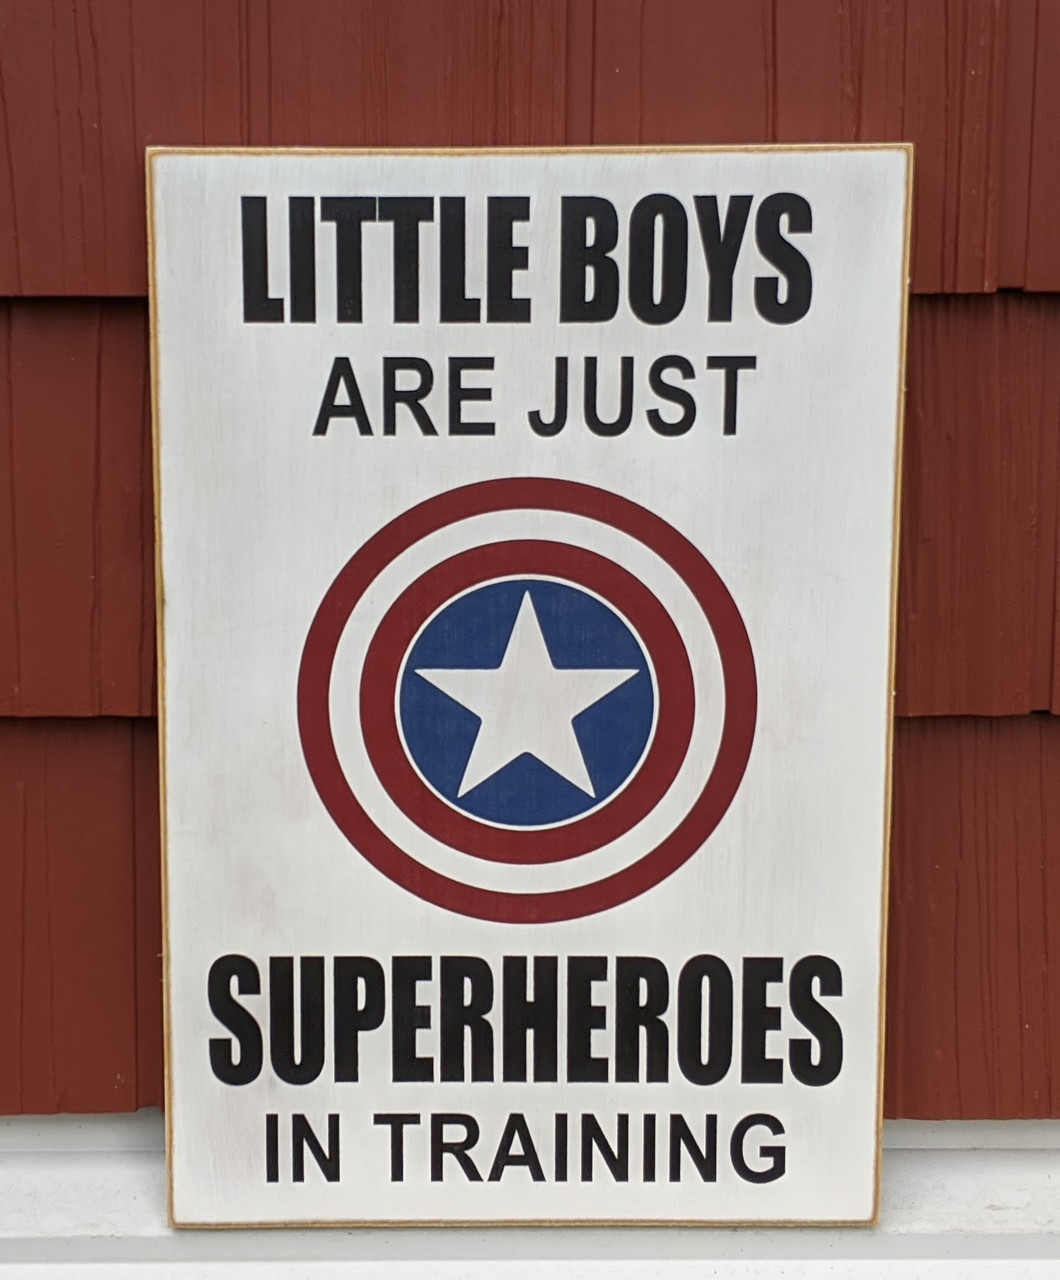 Little Boys Are Just Superheroes in Training Sign